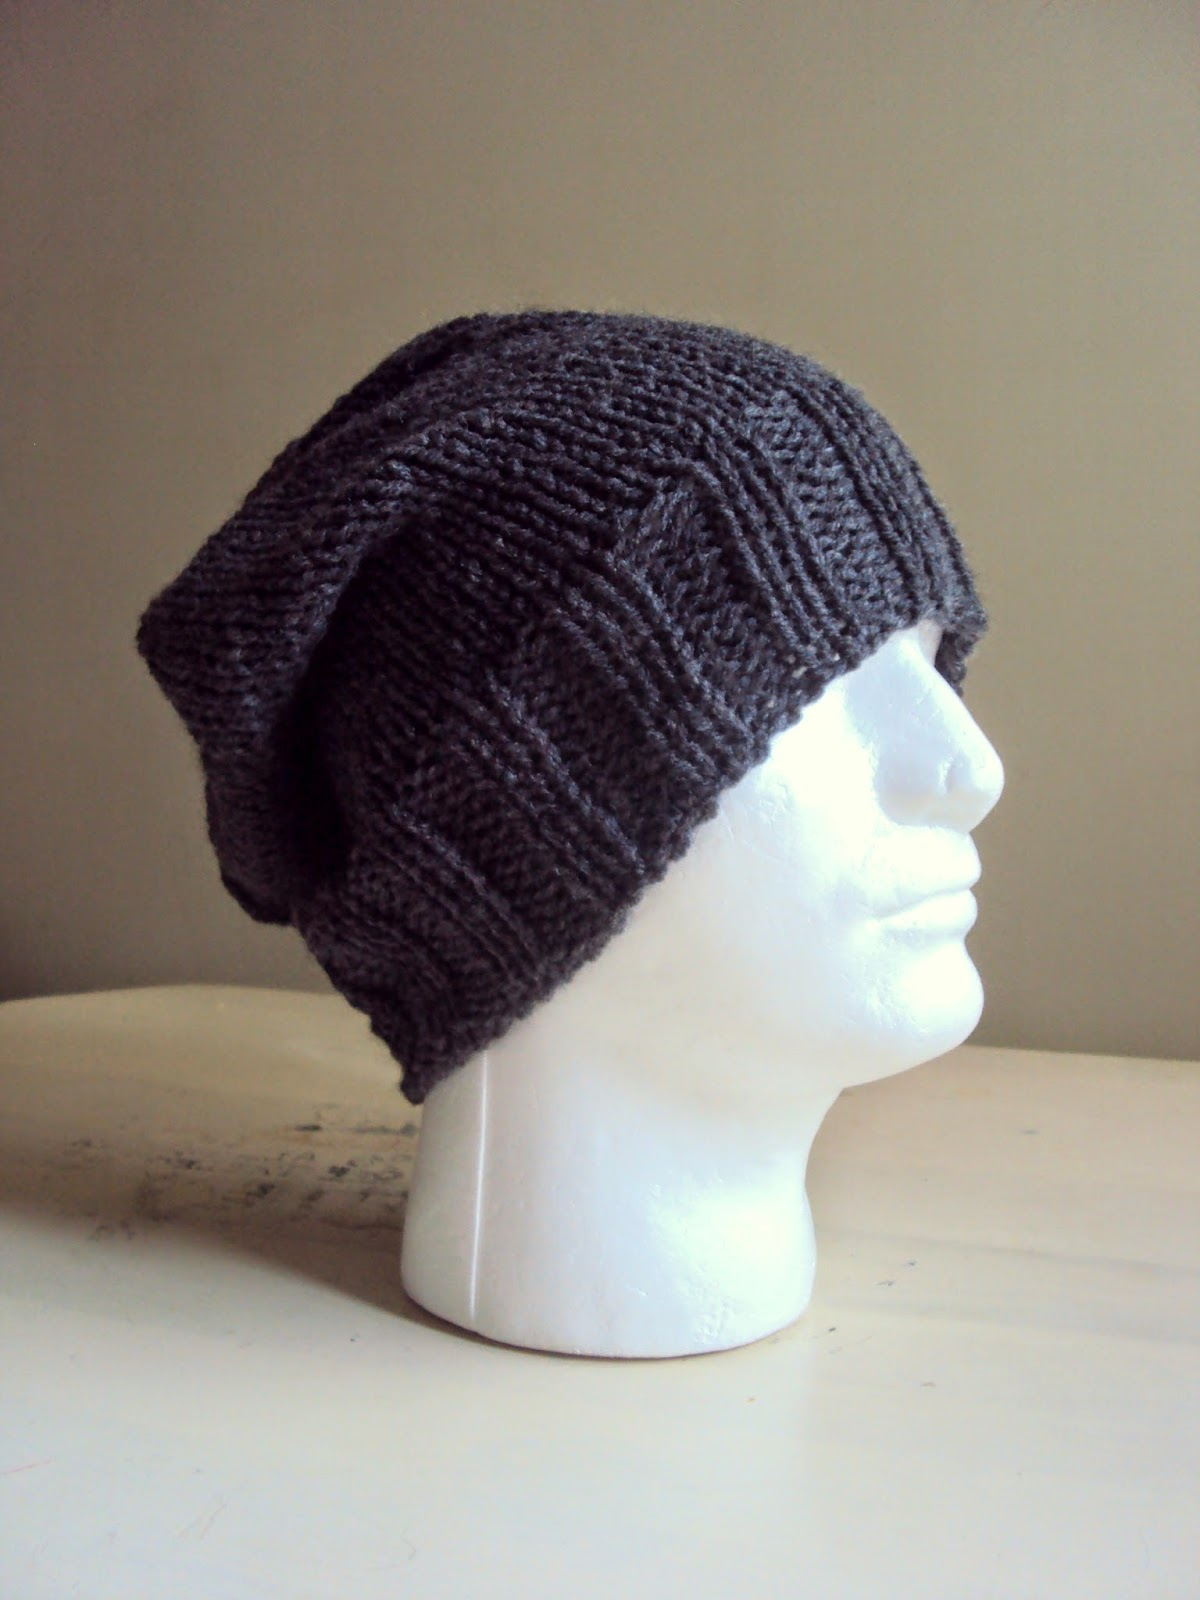 https://www.etsy.com/listing/161197131/men-slouchy-hat-ashton-kutcher-style